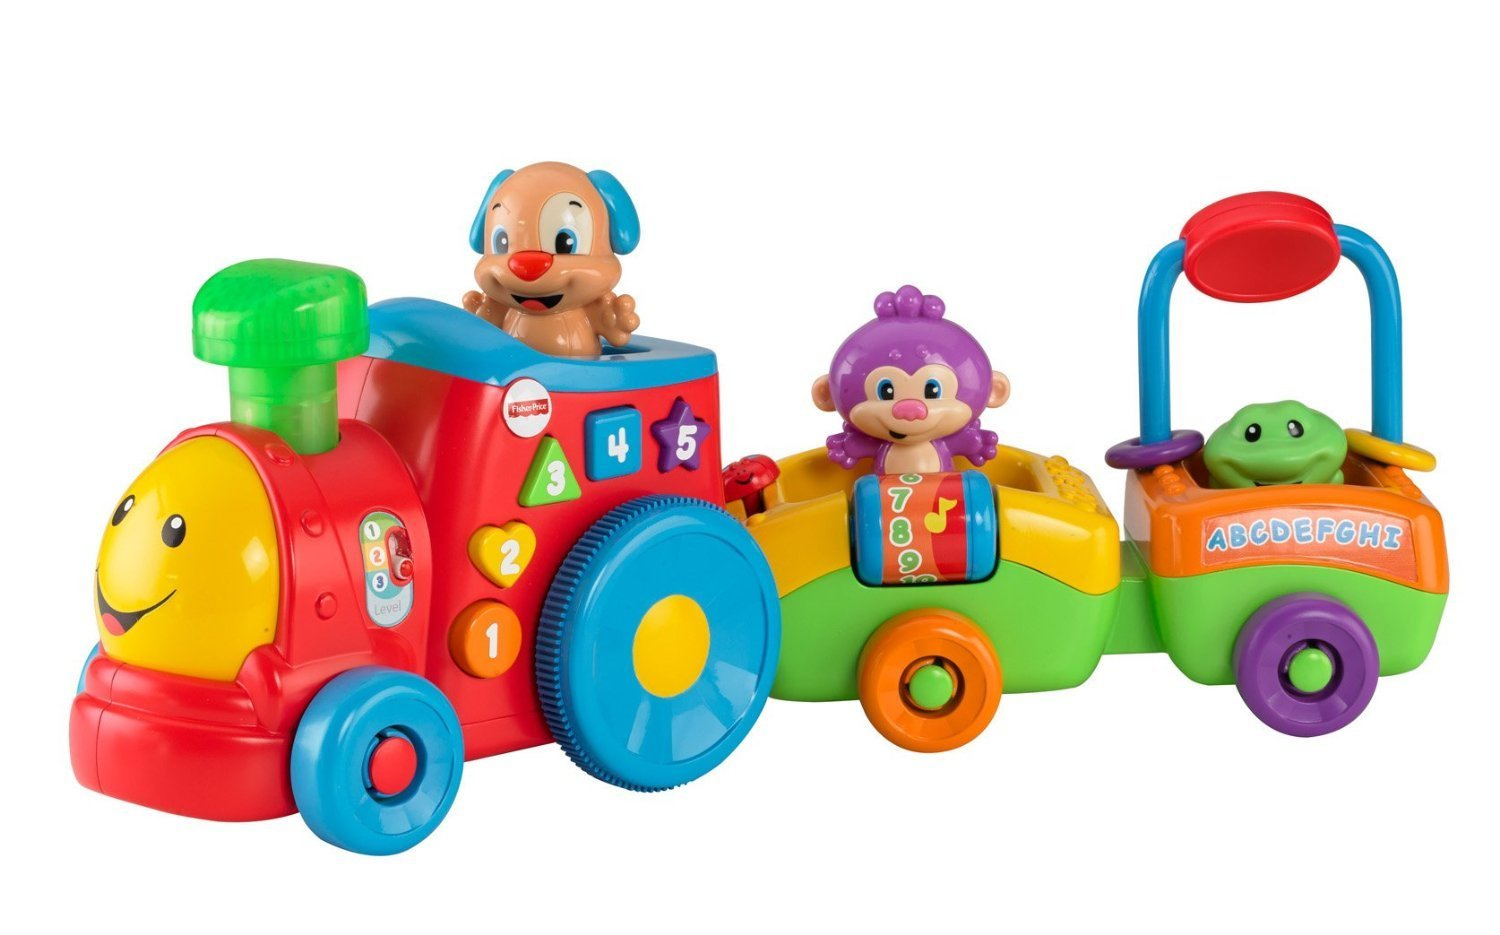 Fisher-Price Laugh and Learn Puppy's Smart Train